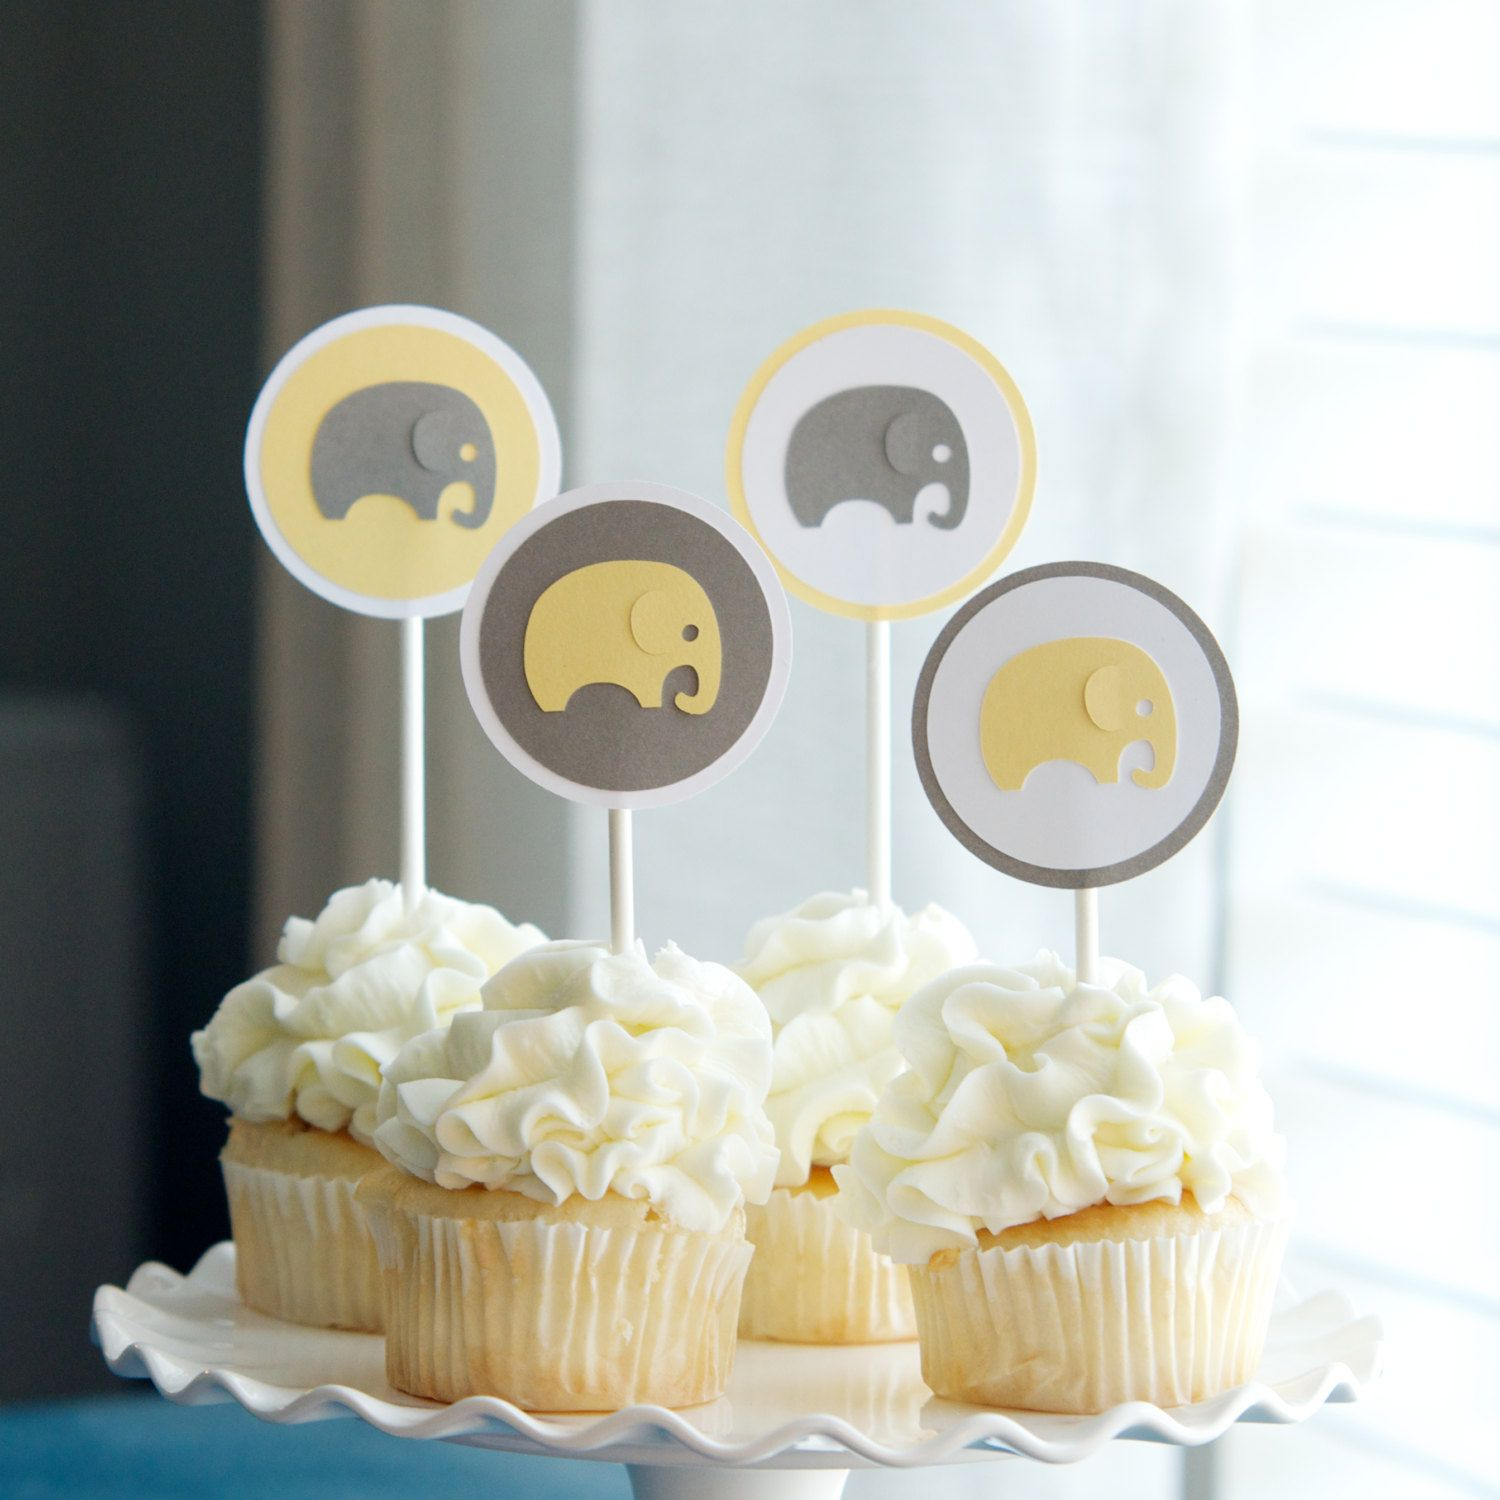 Baby Shower Elephant Cupcake Toppers $12 00 via Etsy